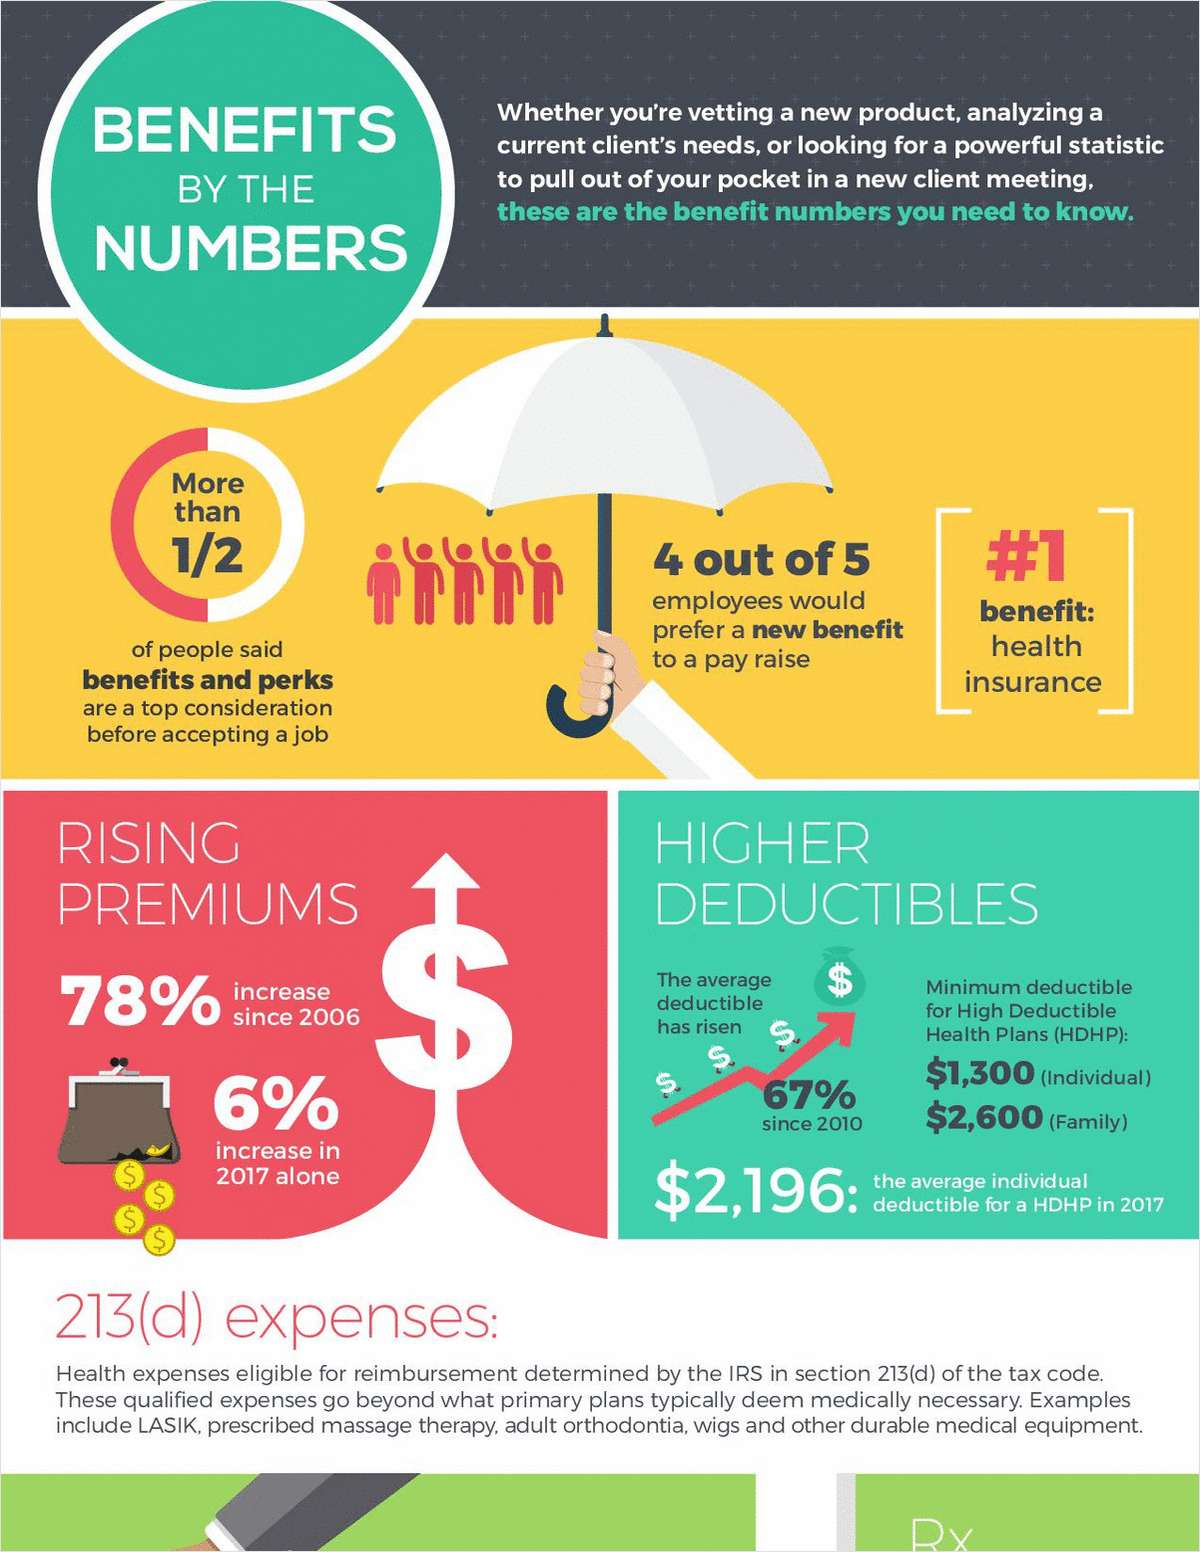 Benefits by the Numbers